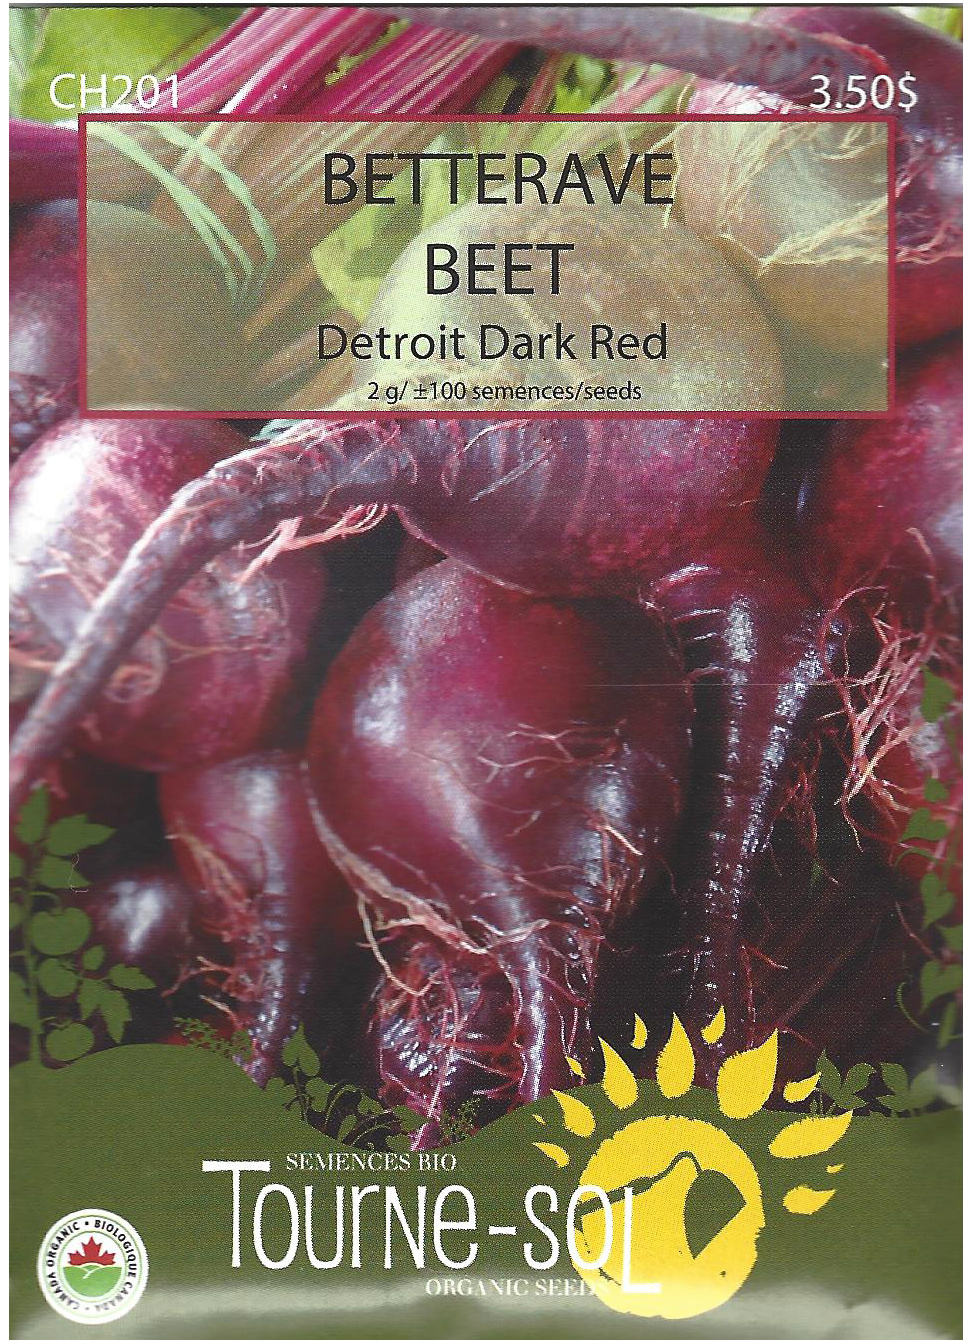 Semence Tourne-sol Betterave Detroit Dark Red